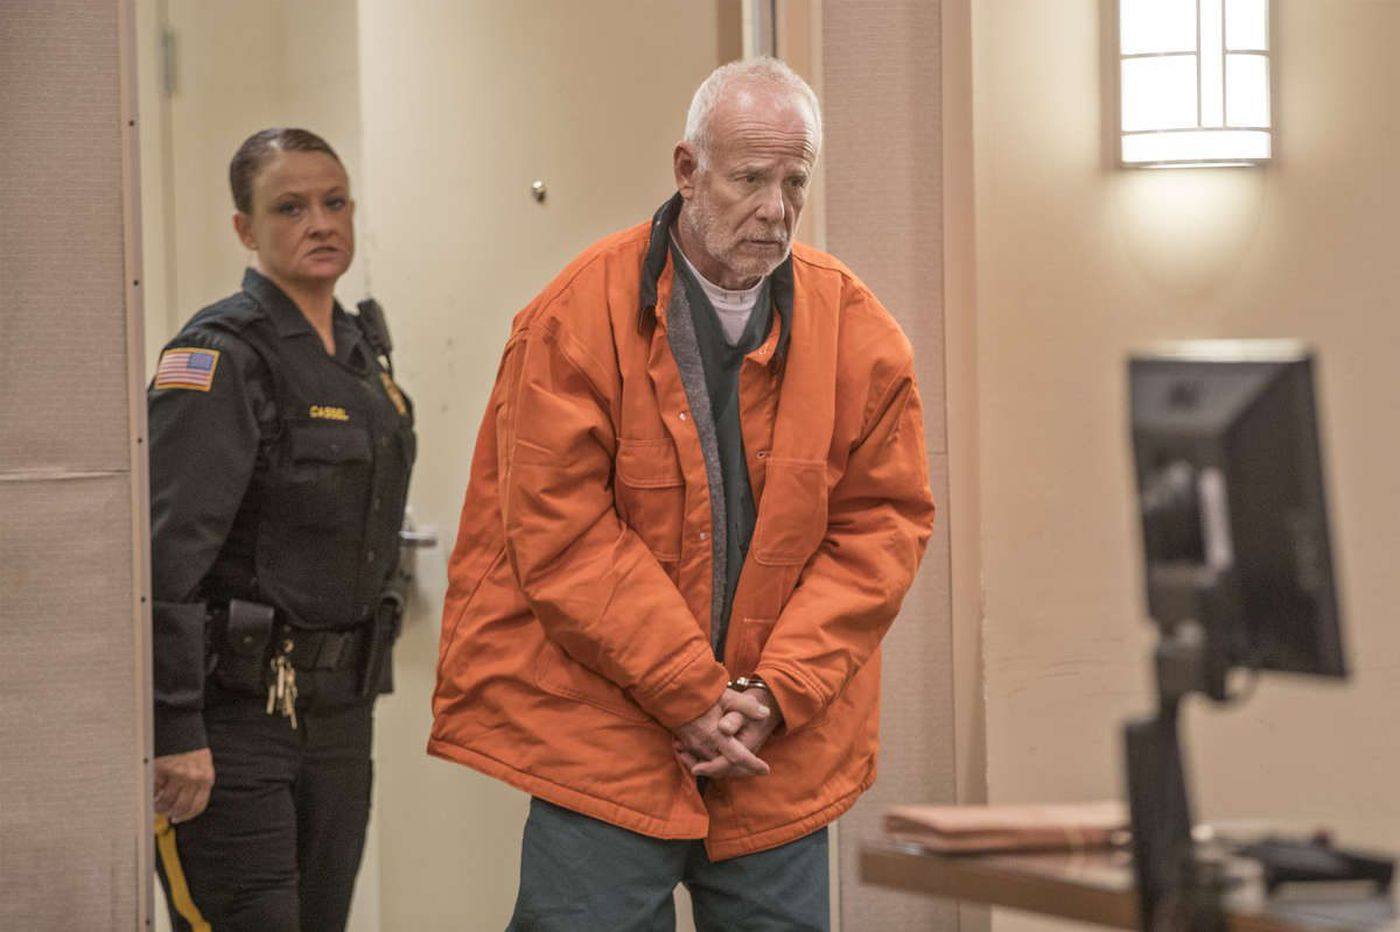 As stepdaughter watches, James Kauffman ordered held for trial in April Kauffman murder